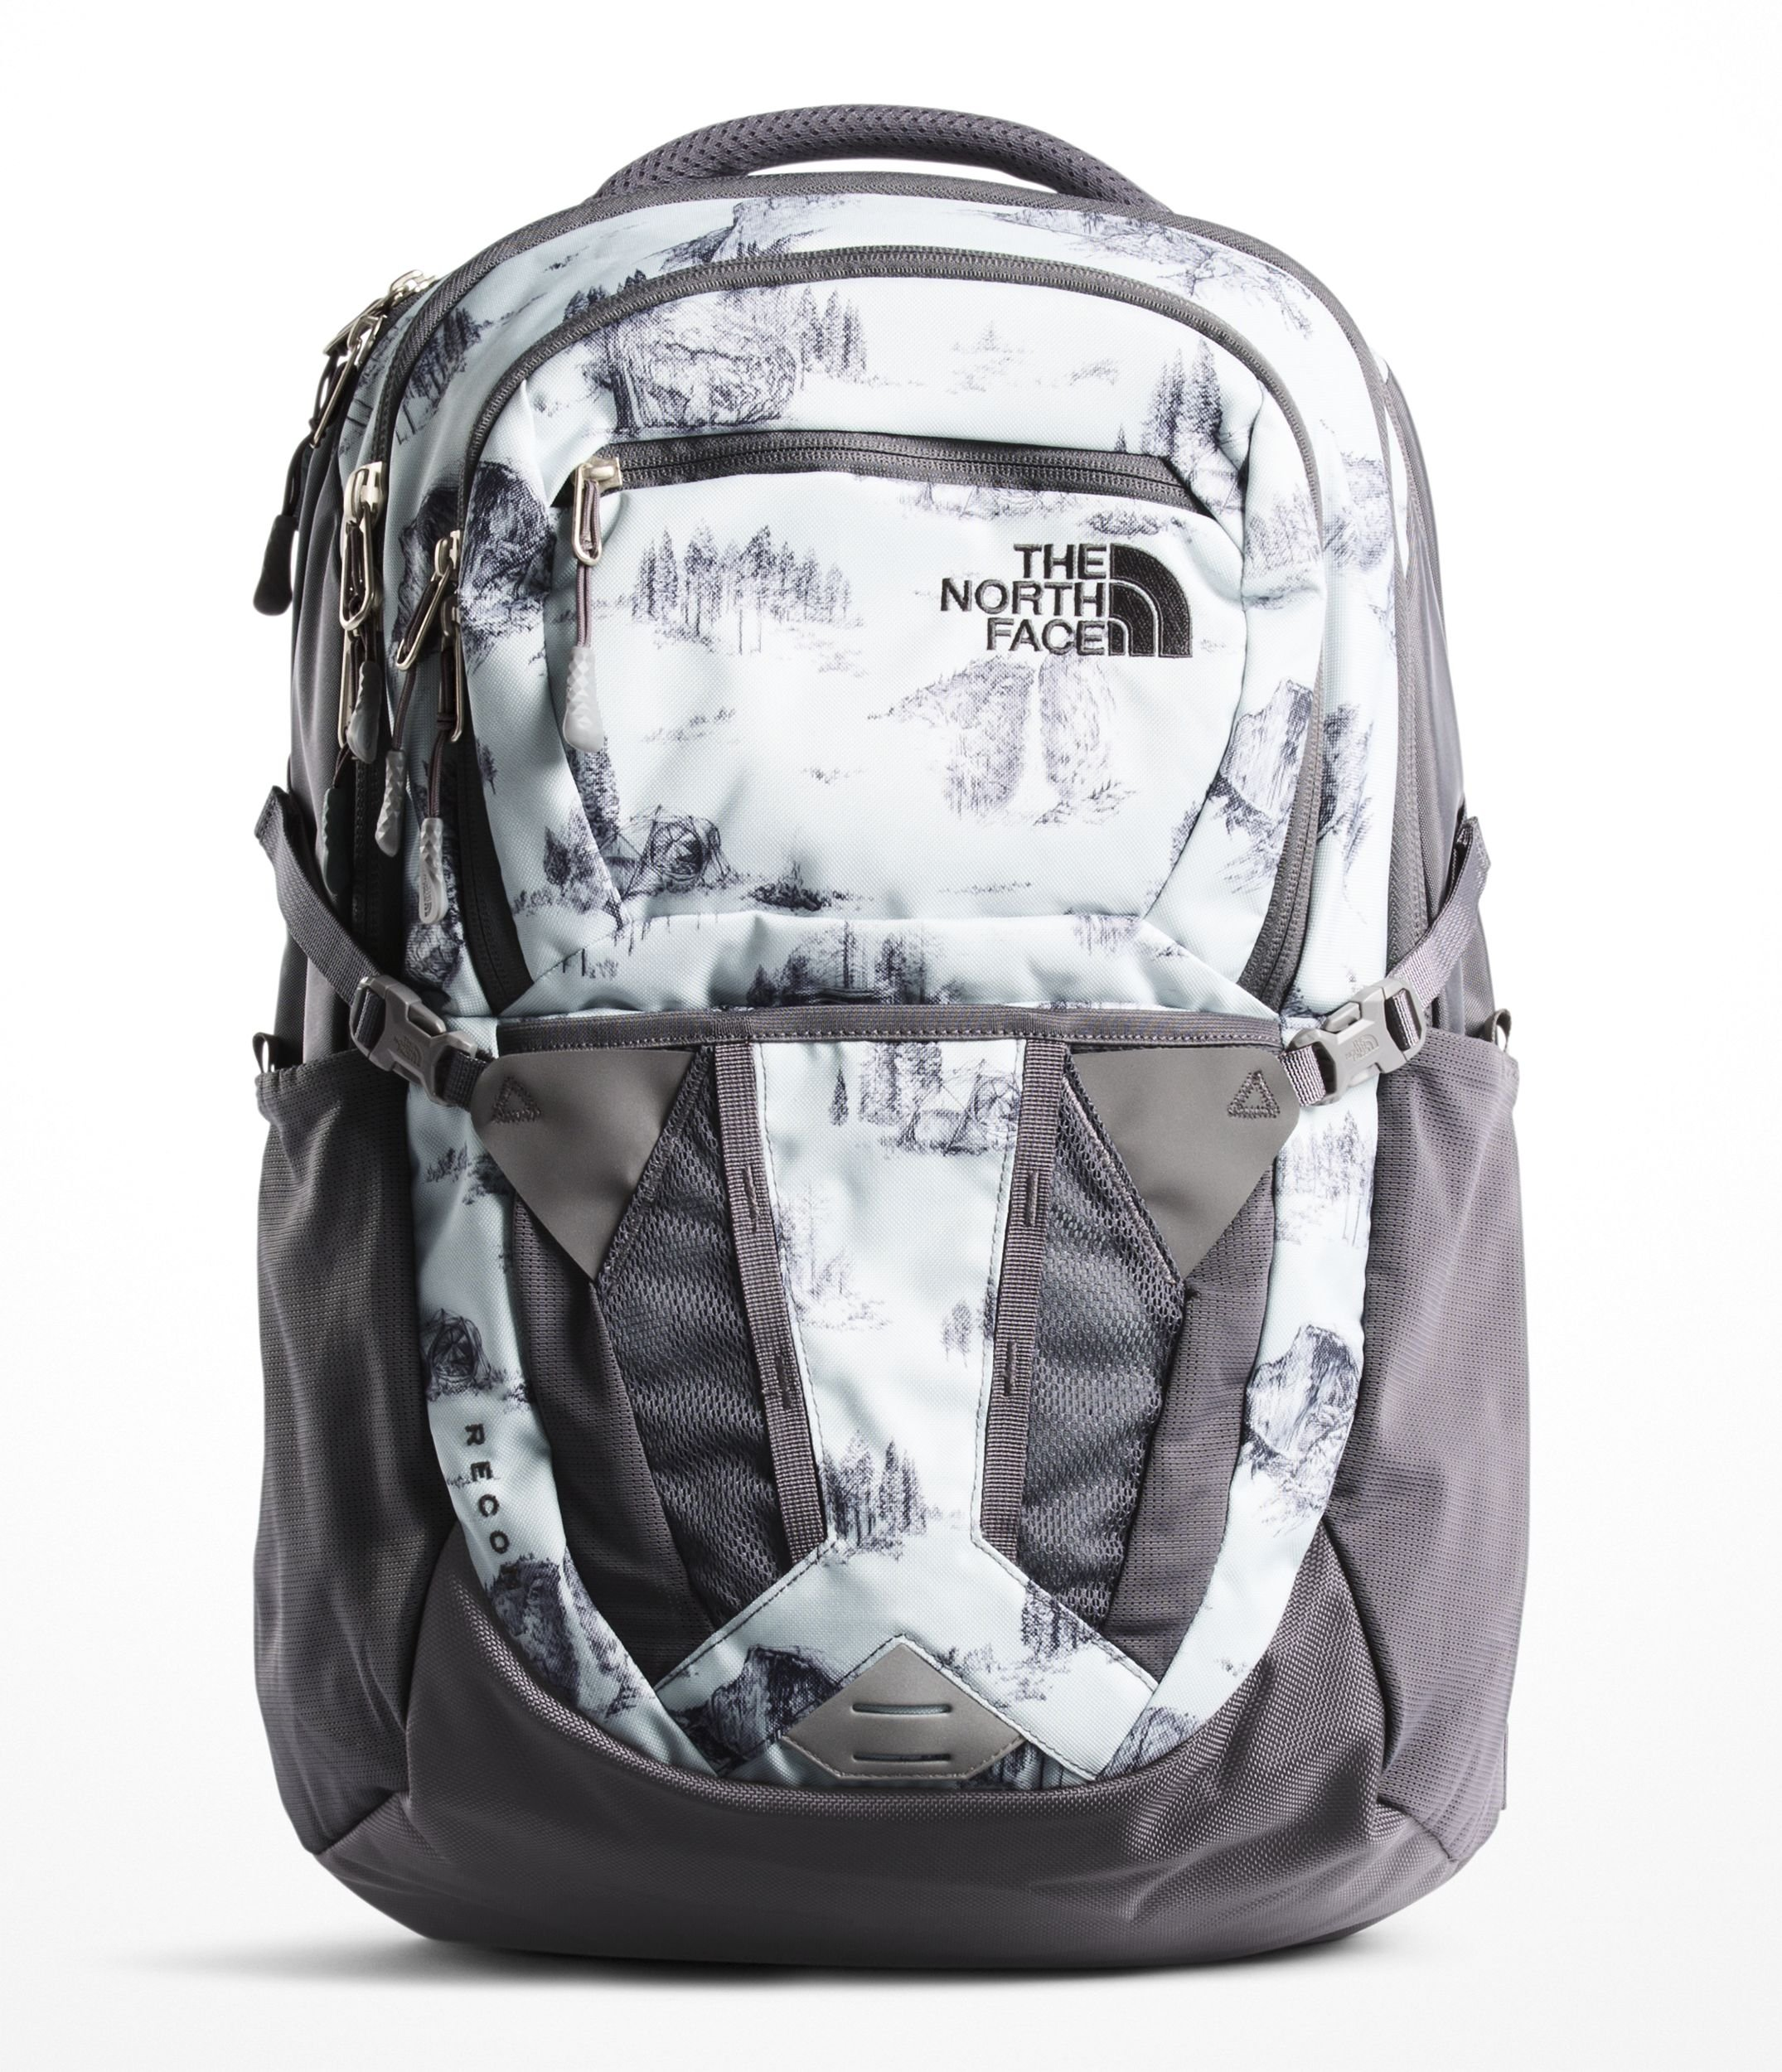 56045d0c7b Galleon - The North Face Women s Recon Backpack - Rabbit Grey Yosemite  Toile Print   Rabbit Grey - OS